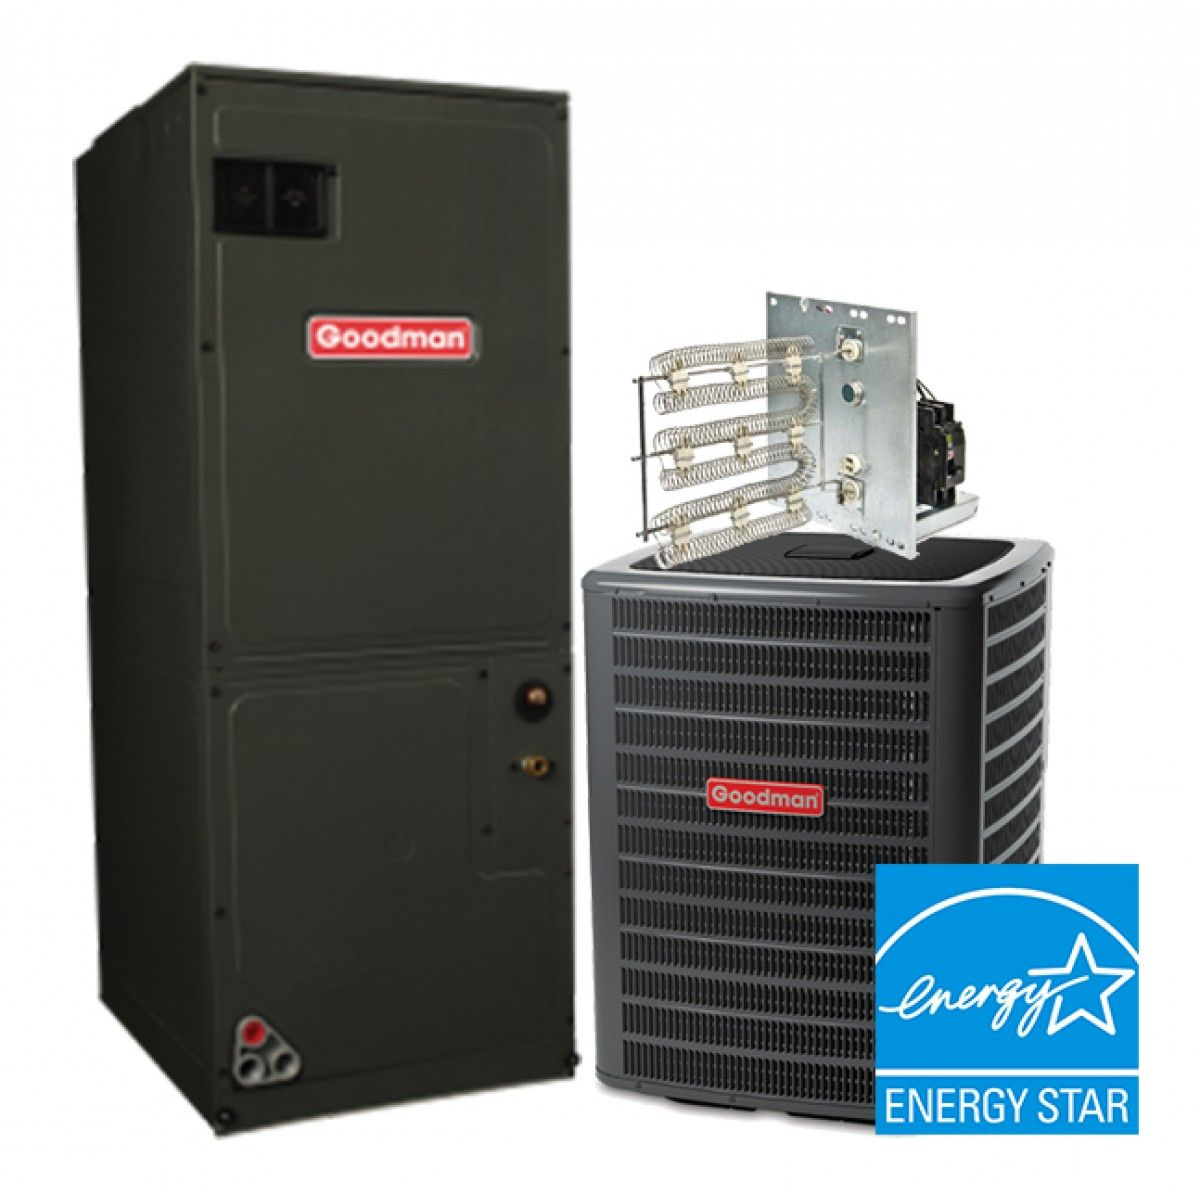 Heat Pump Systems : Goodman ton seer heat pump system star energy in